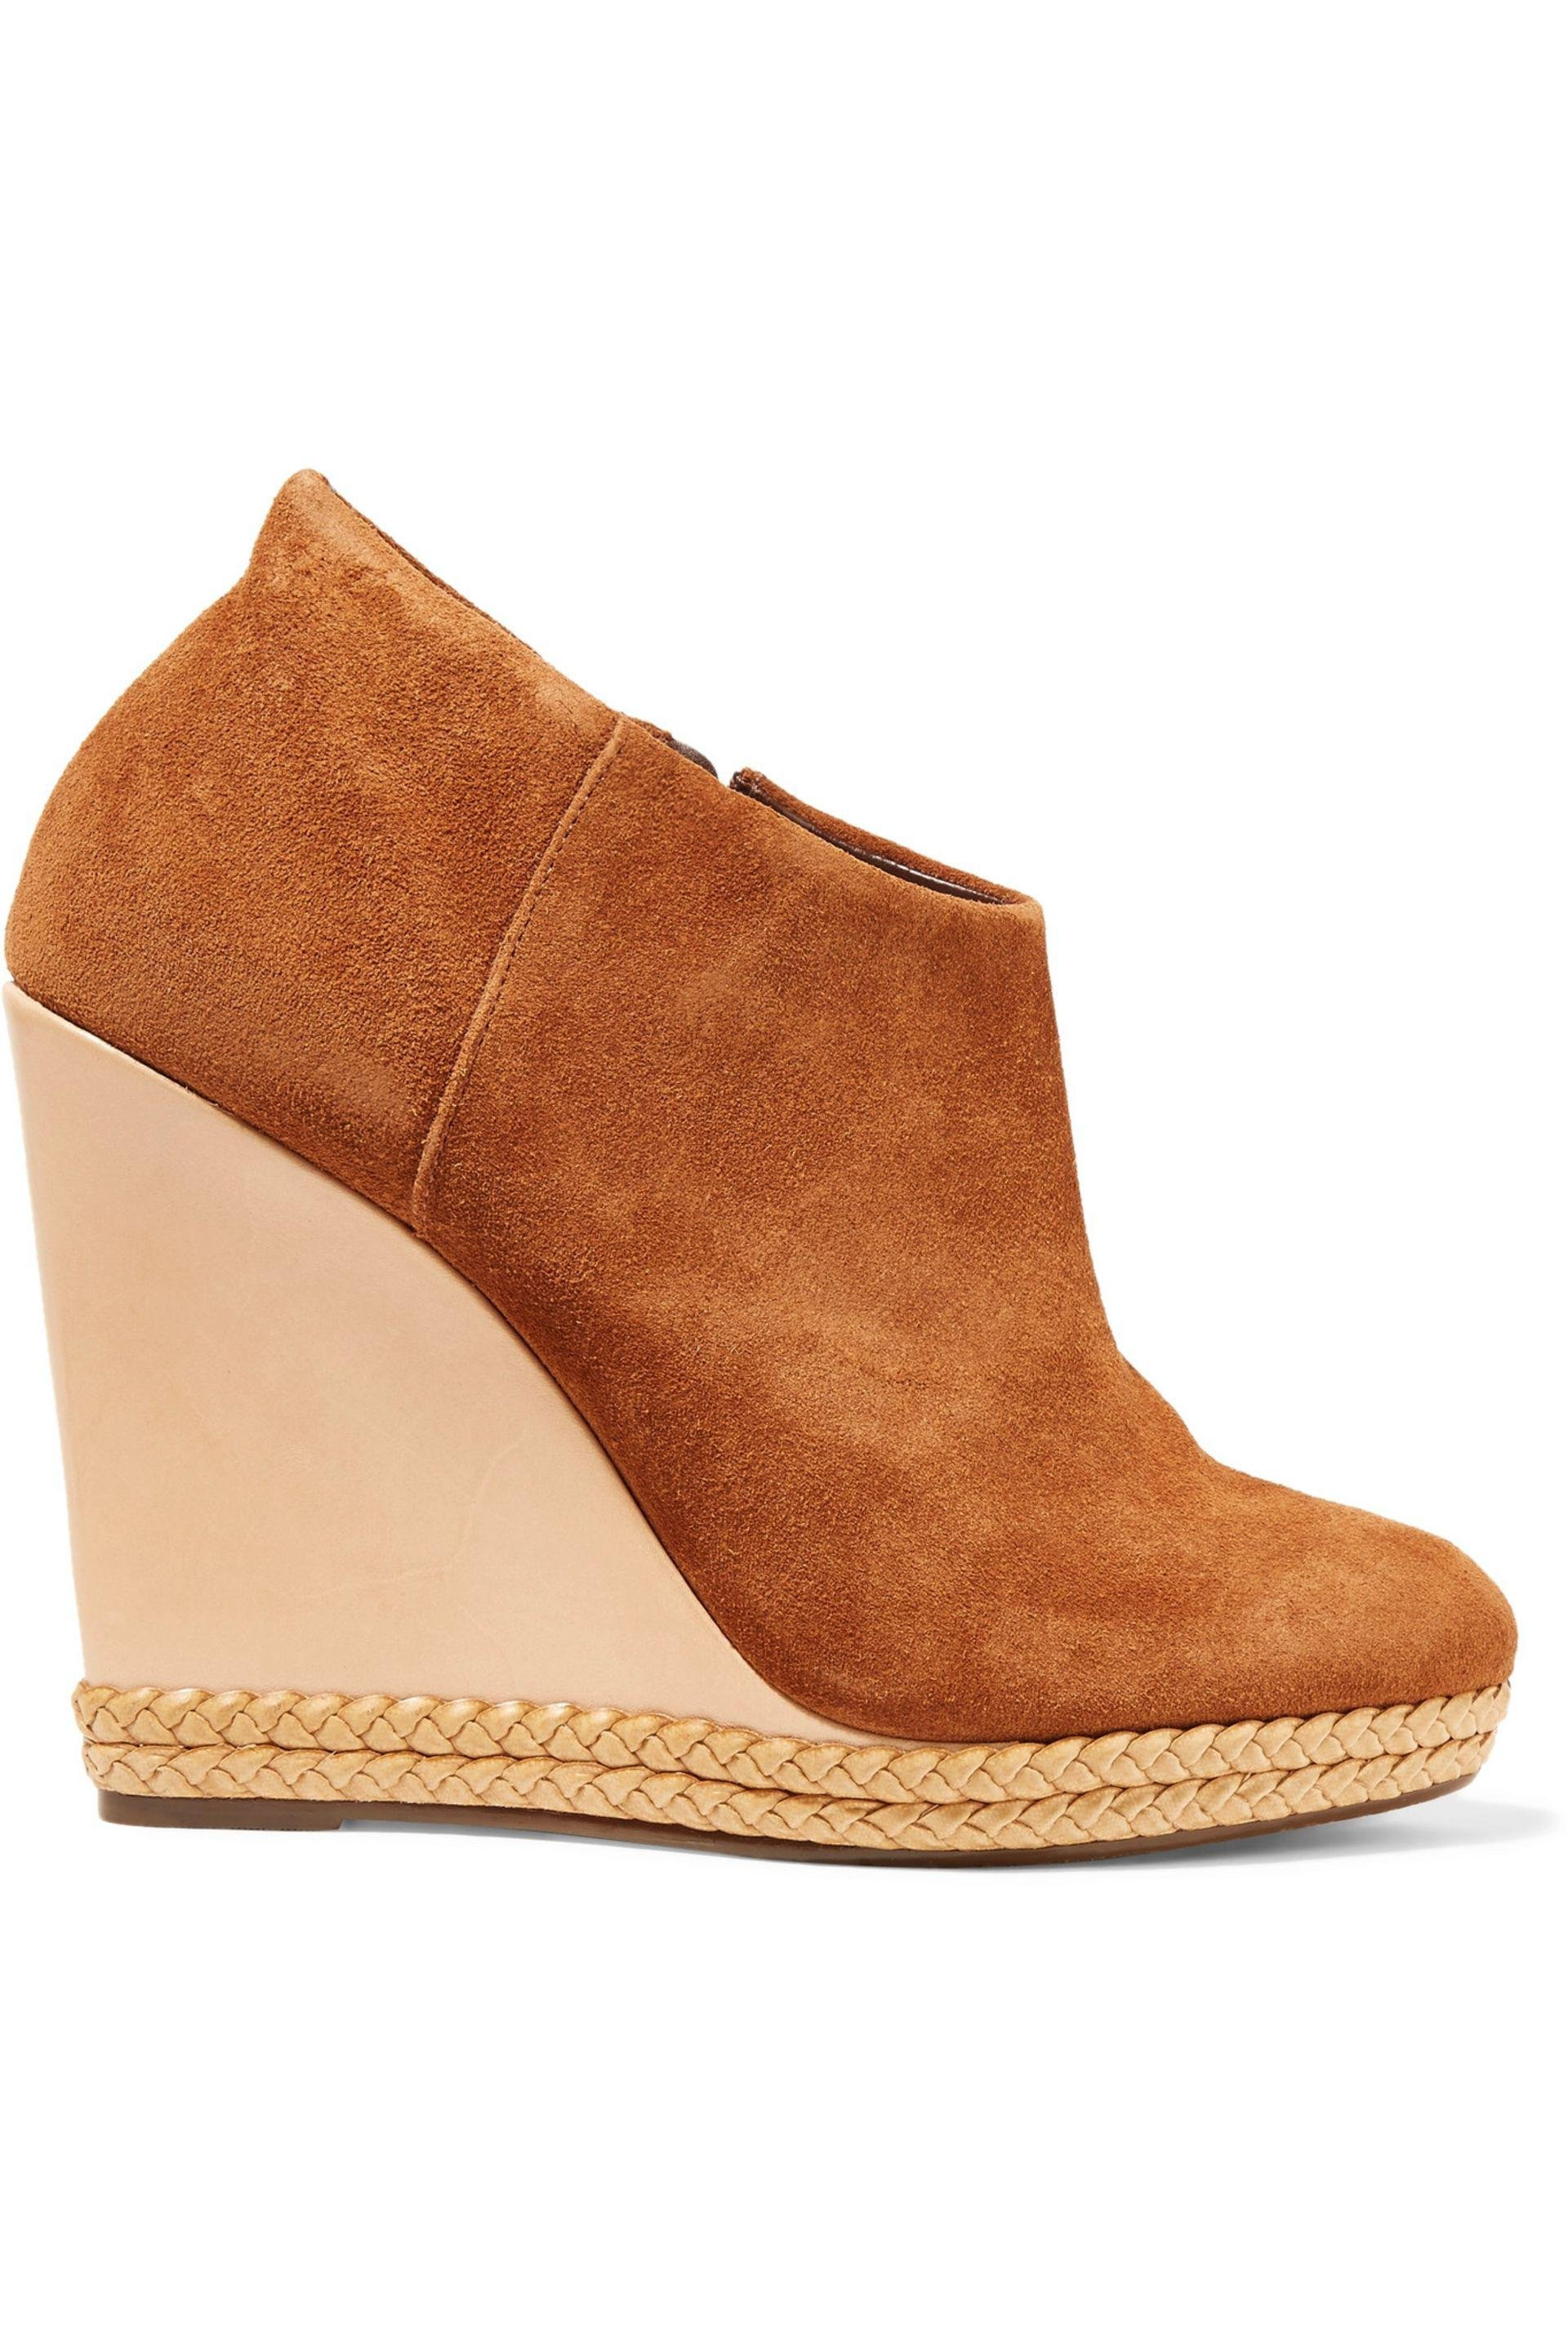 Schutz Suede Wedge Ankle Boots many kinds of cheap online JsugWRIcD